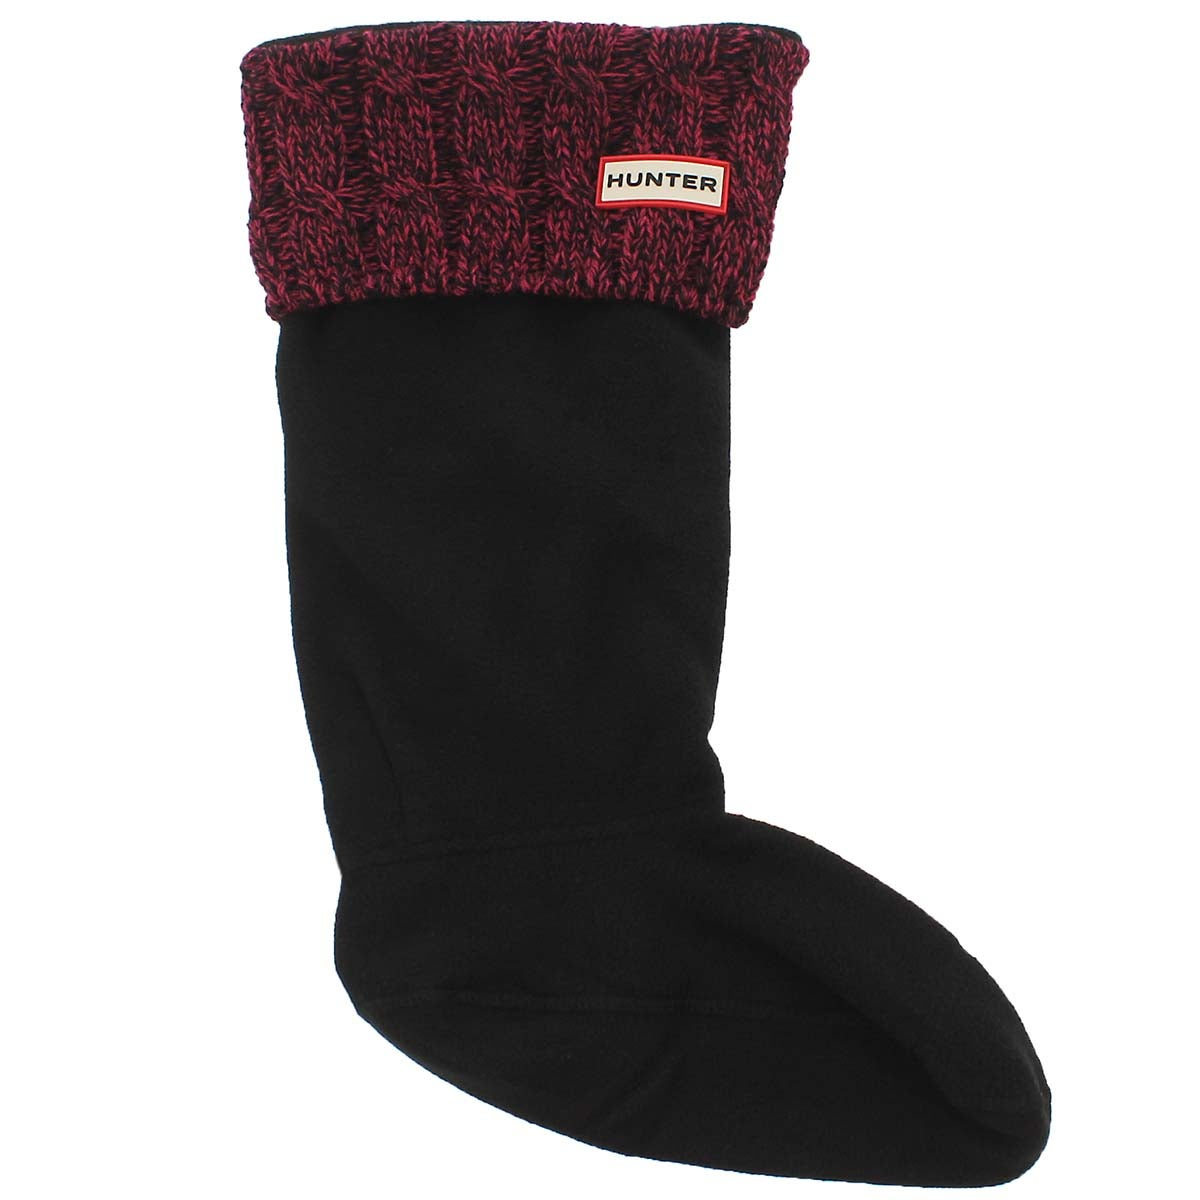 Lds 6 Stitch Cable pnk/blk boot sock